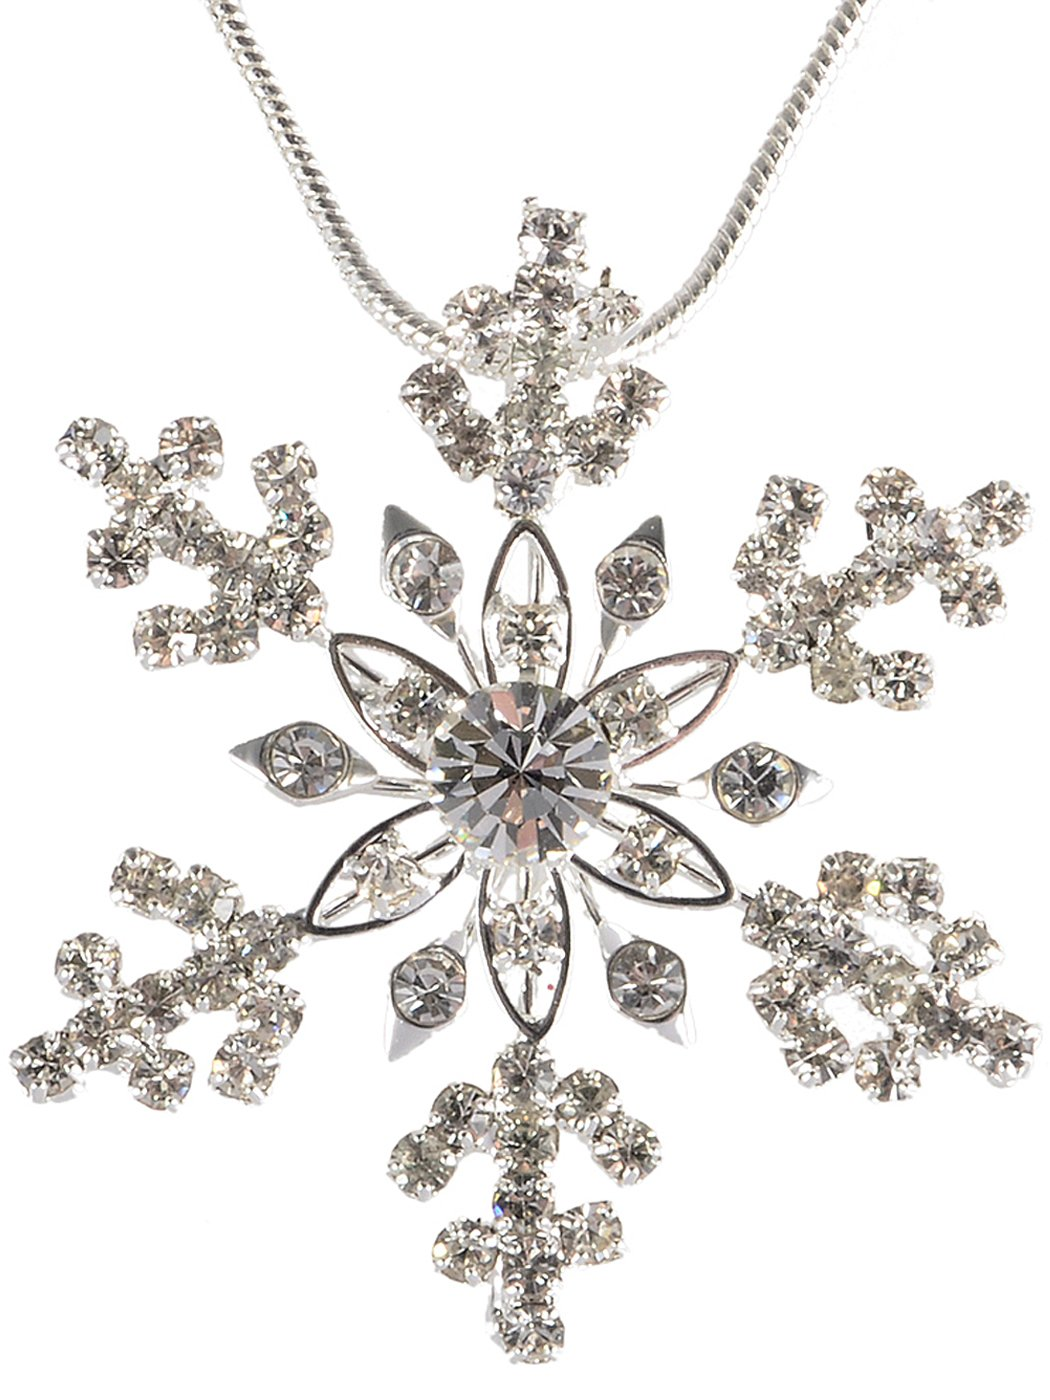 Alilang Silvery Tone Crystal Clear Colored Rhinestones Snowlake Winter Chain Necklace Pendant